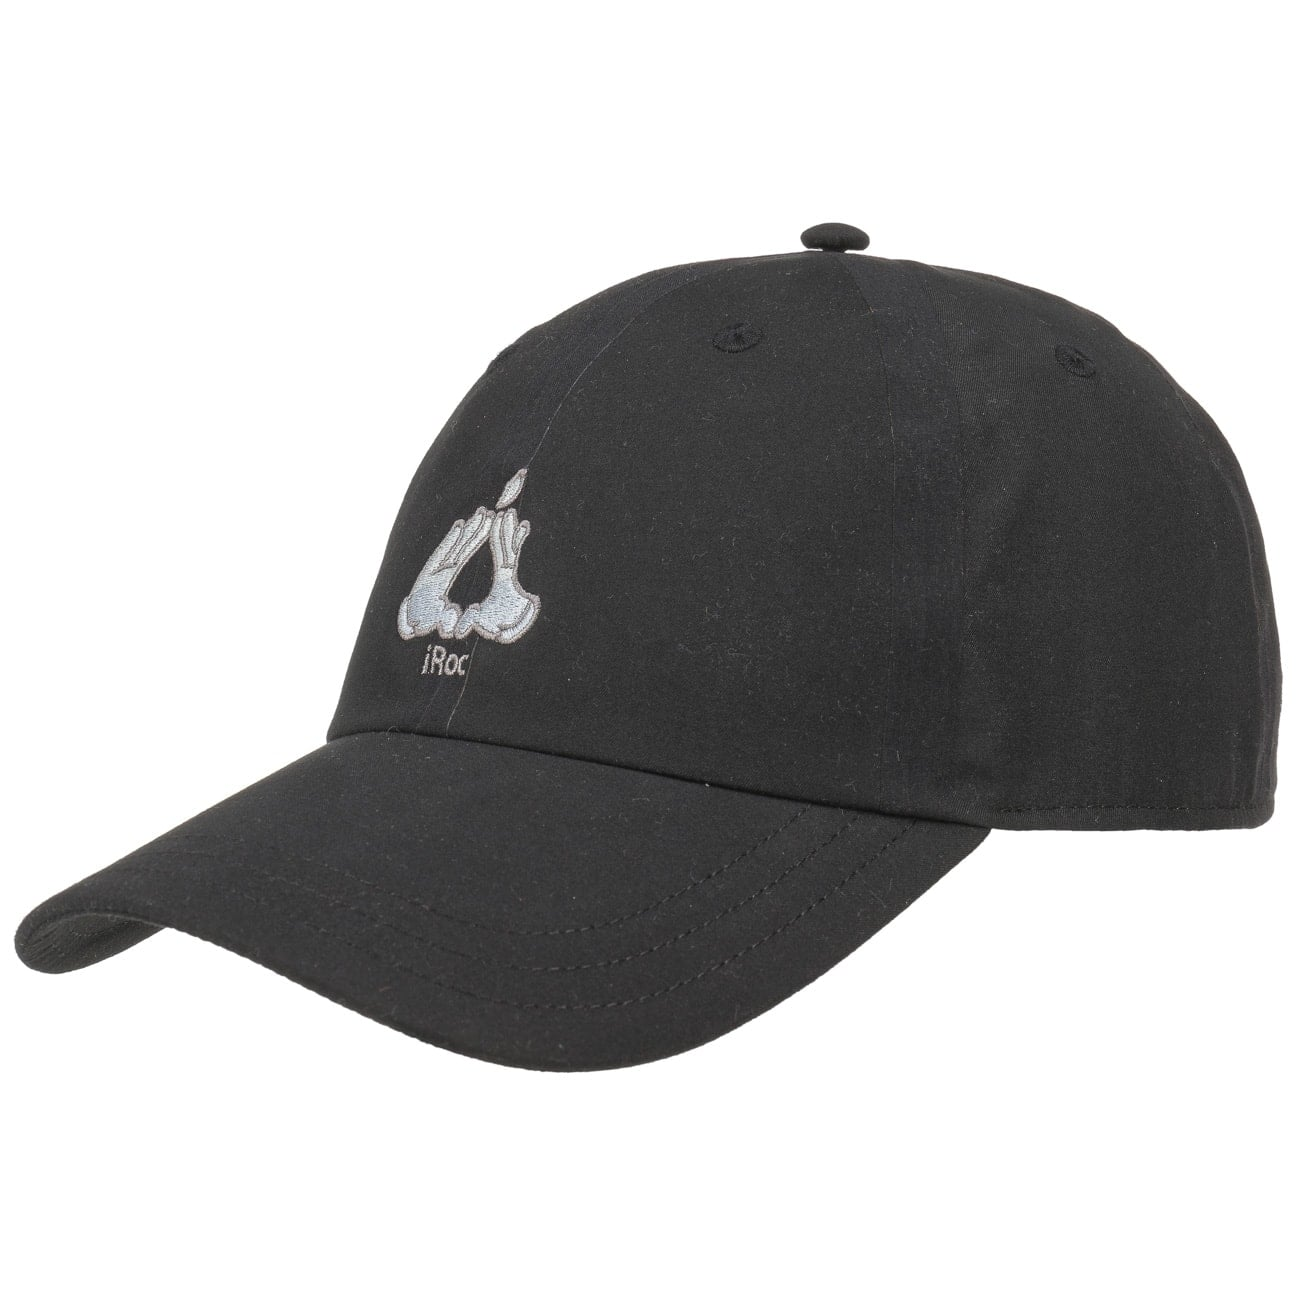 Gorra Cookin Curved Brim by Cayler & Sons  gorra de baseball